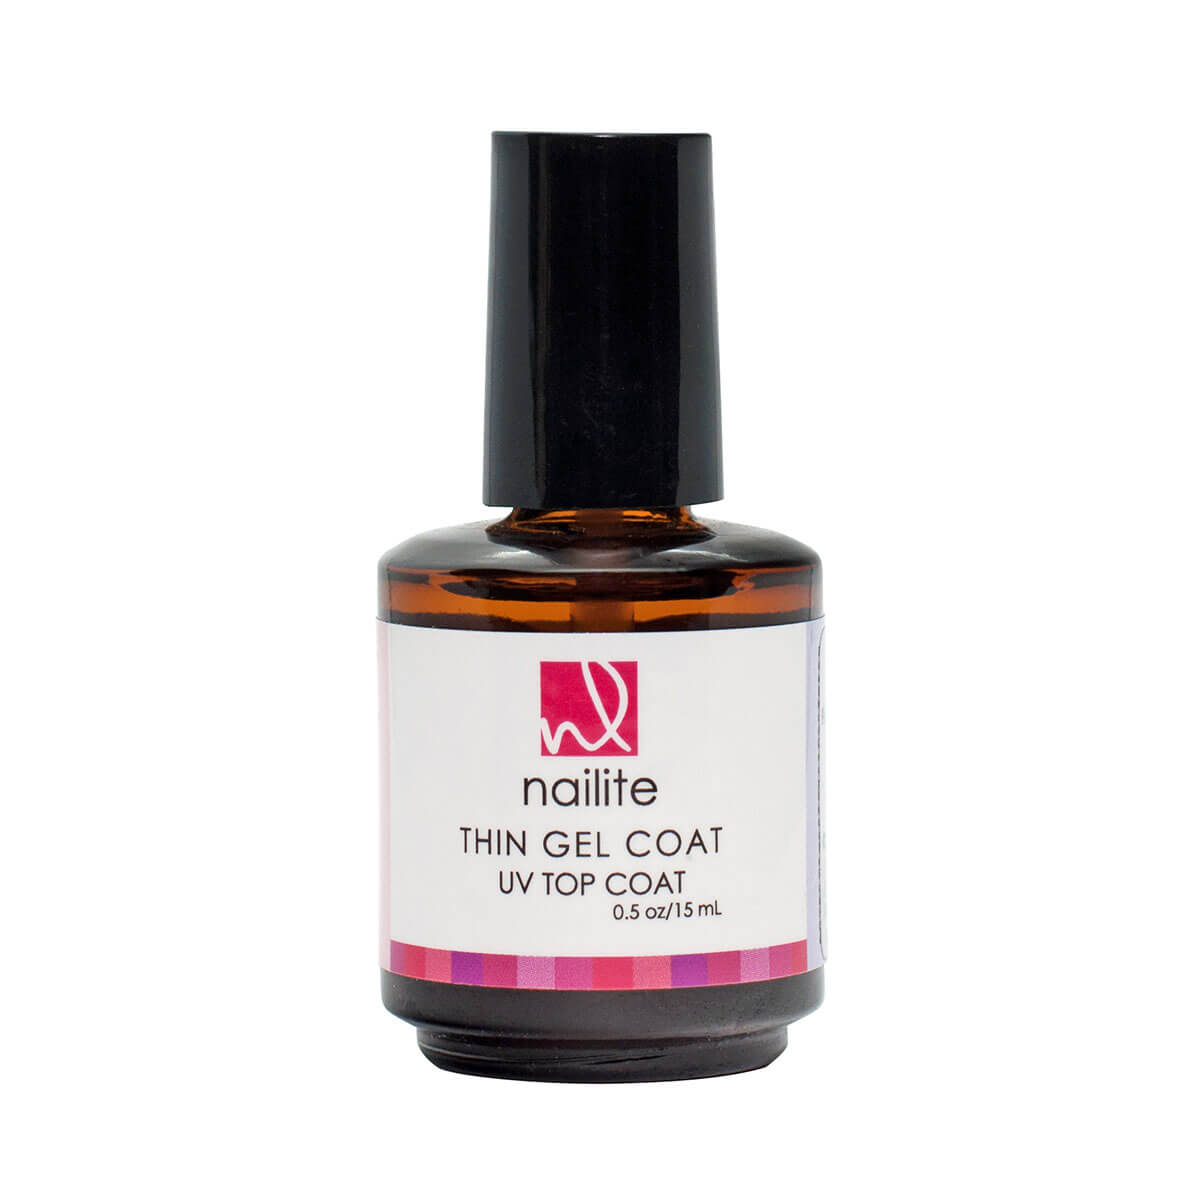 Thin Gel Coat Uv Nailite Top Coat 15ml